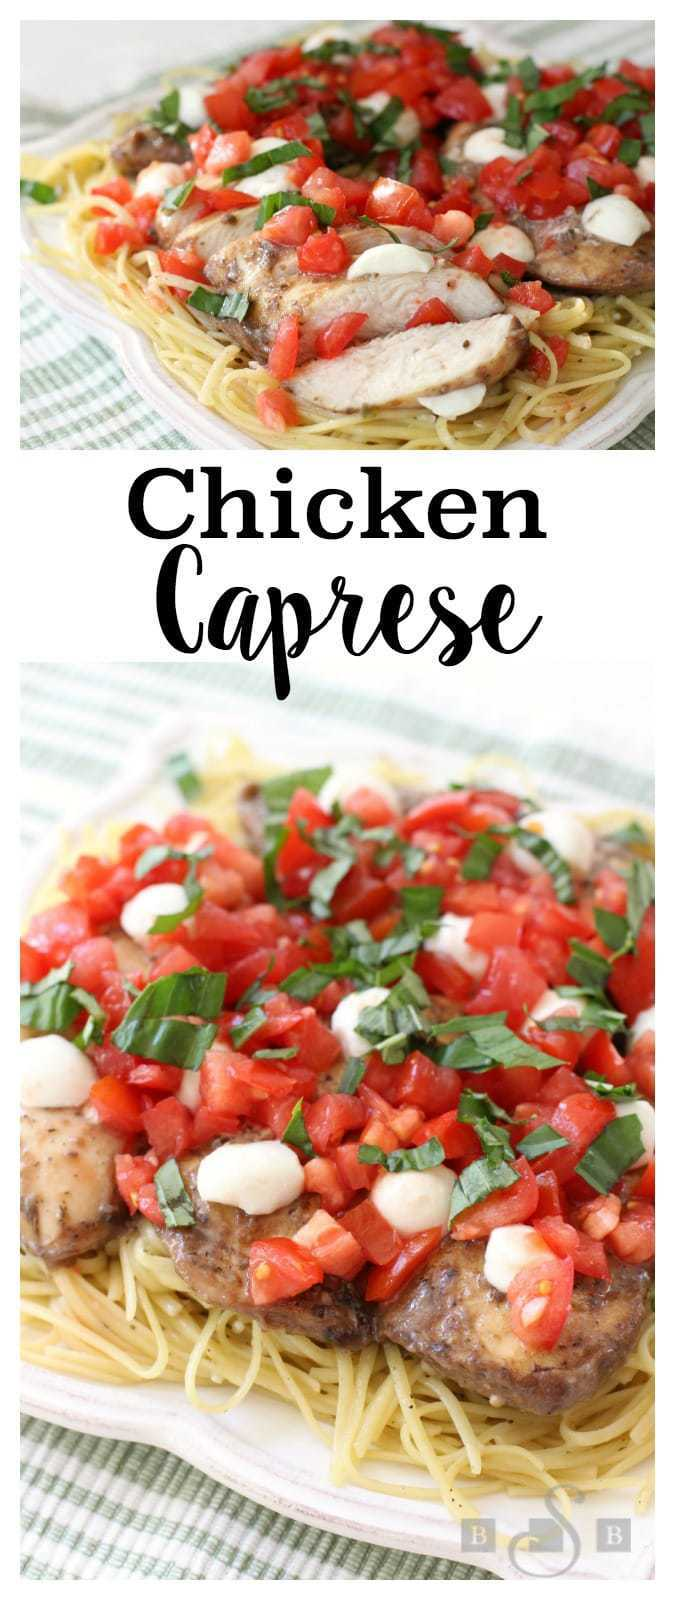 We're having a warm start to Fall here in Utah, which means the tomatoes from my garden are still growing abundantly. It's wonderful! This Chicken Caprese is a variation on a family favorite. I love how simple it is to make. The dish has incredible flavor and I adorethe fresh taste. It's easy enough for a weeknight dinner but the end product is so gorgeous, it could easily be for guests.